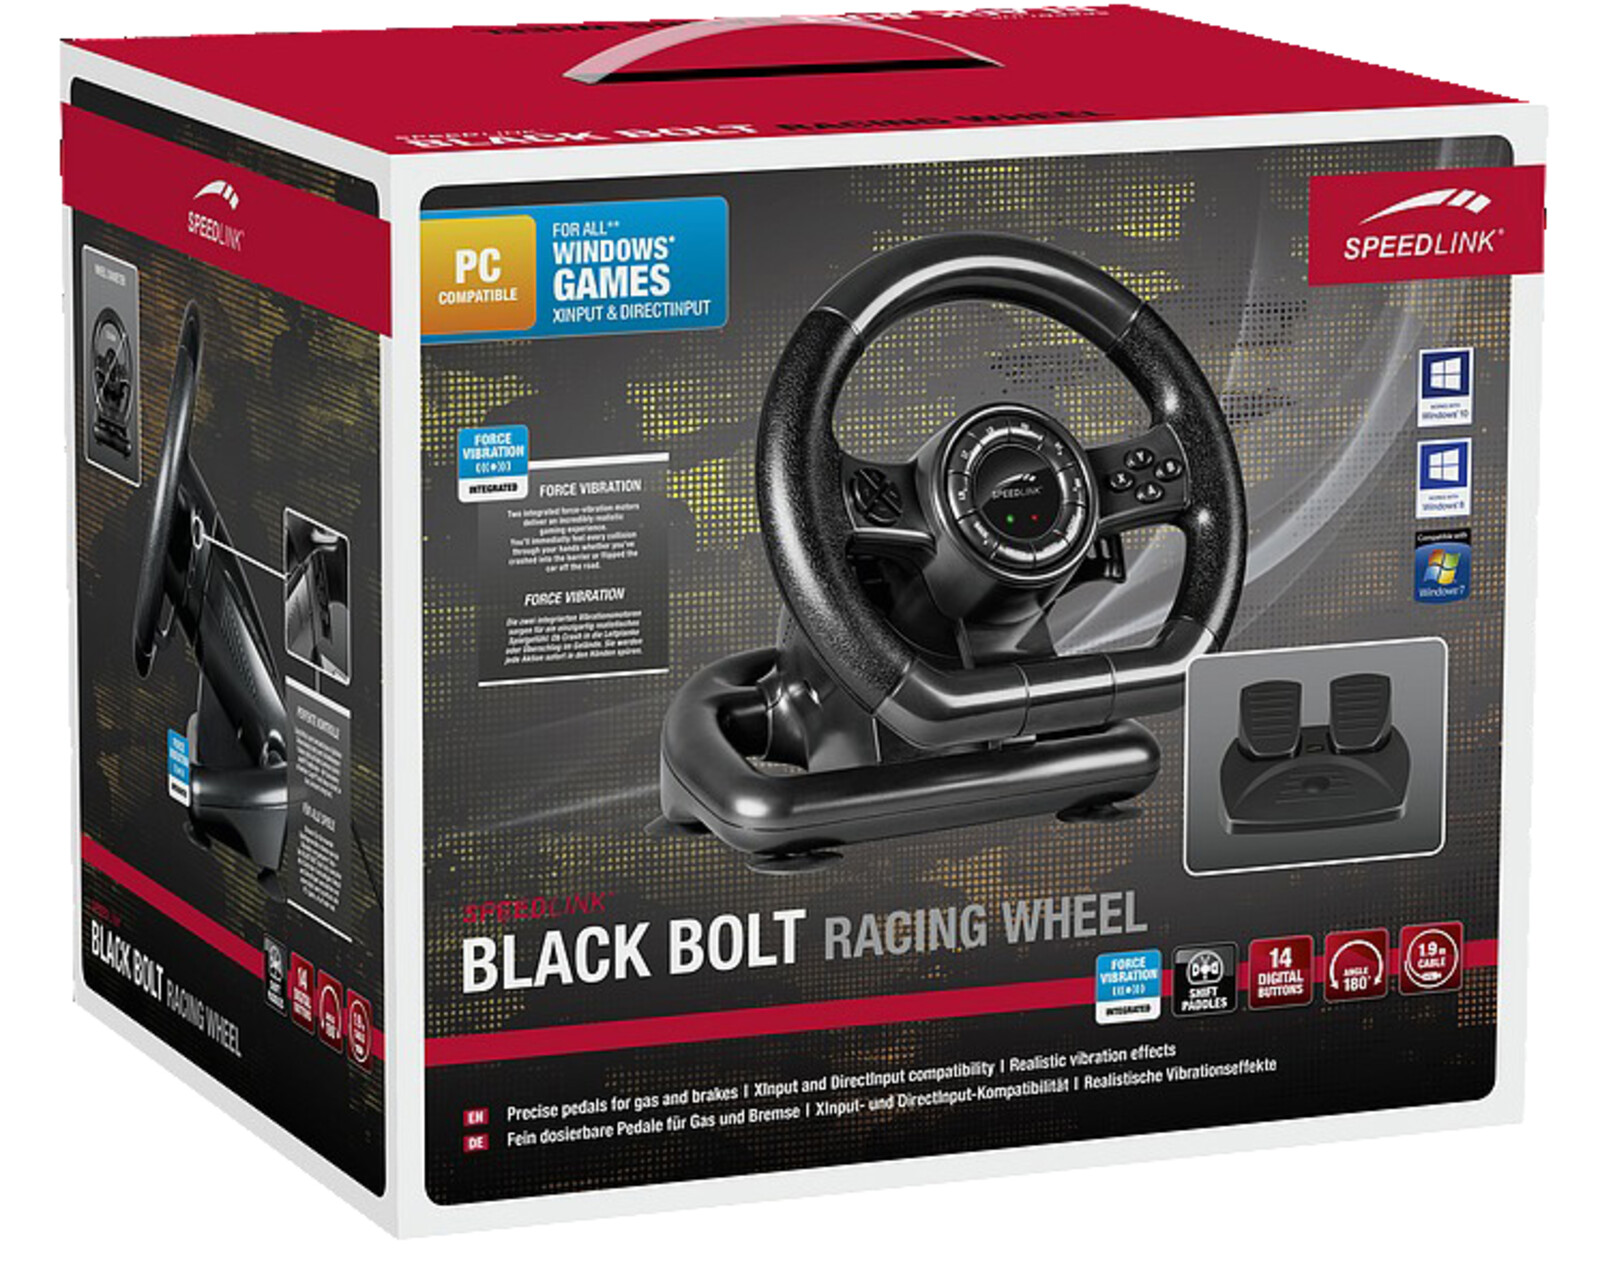 speedlink sl 650300 bk black bolt pc racing wheel gaming. Black Bedroom Furniture Sets. Home Design Ideas